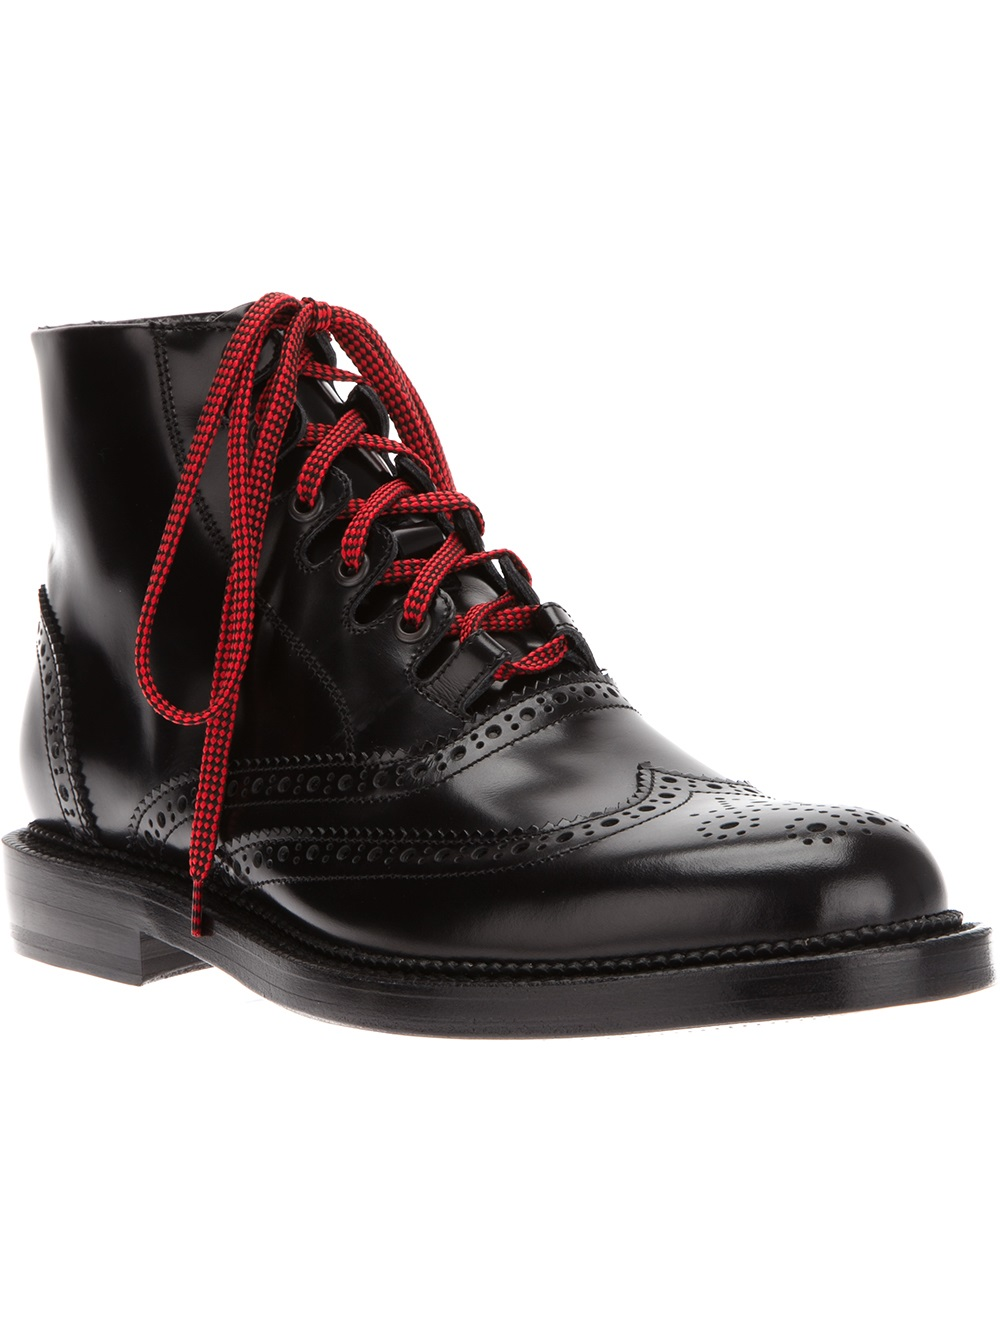 Dsquared2 Brogue Boot In Black For Men Lyst